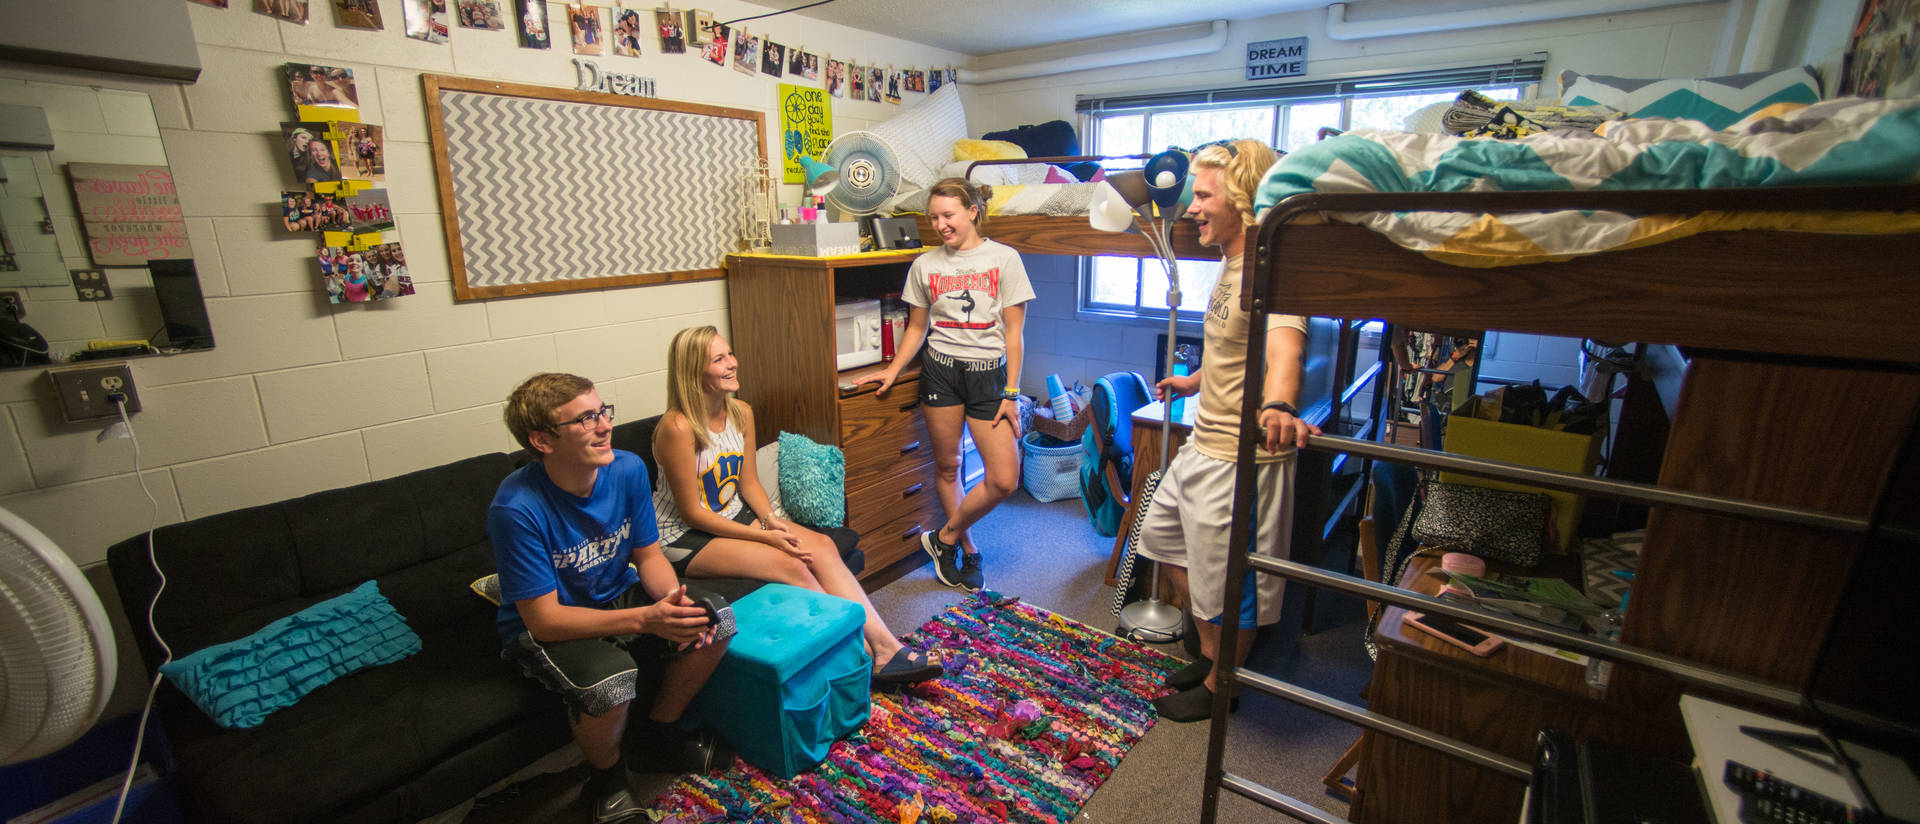 Four UWEC students hanging out in their dorm room